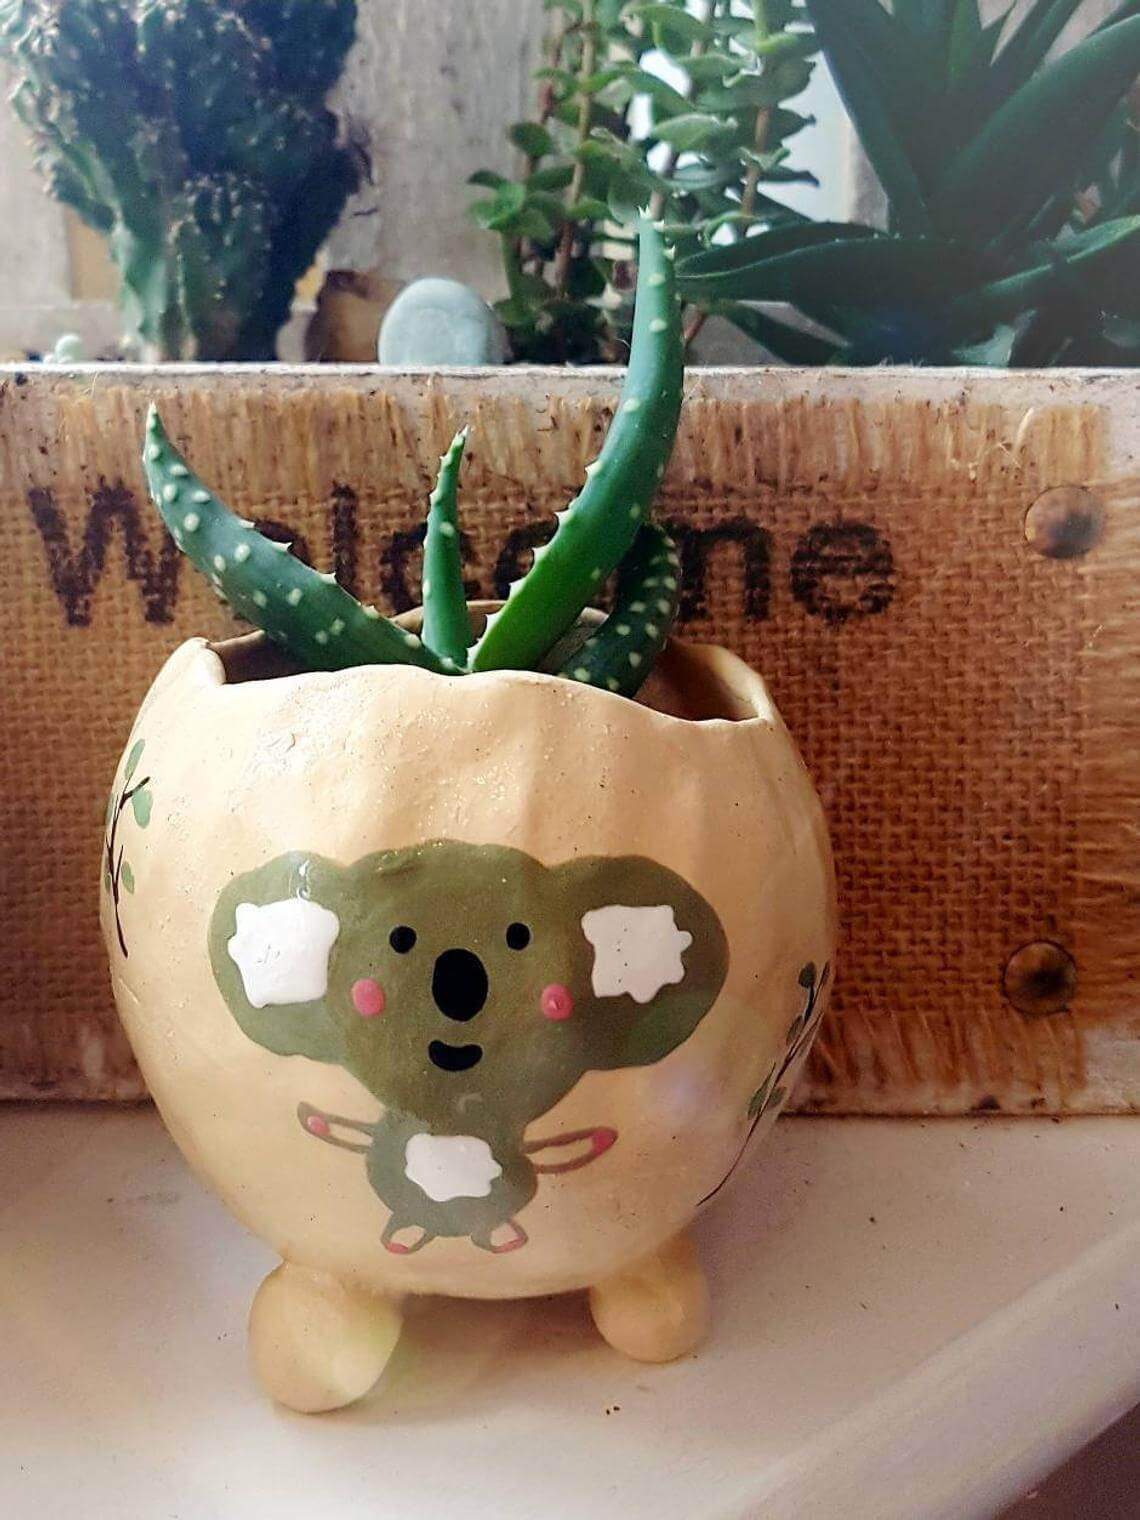 Hand-Drawn, Hand-Made Koala Pot